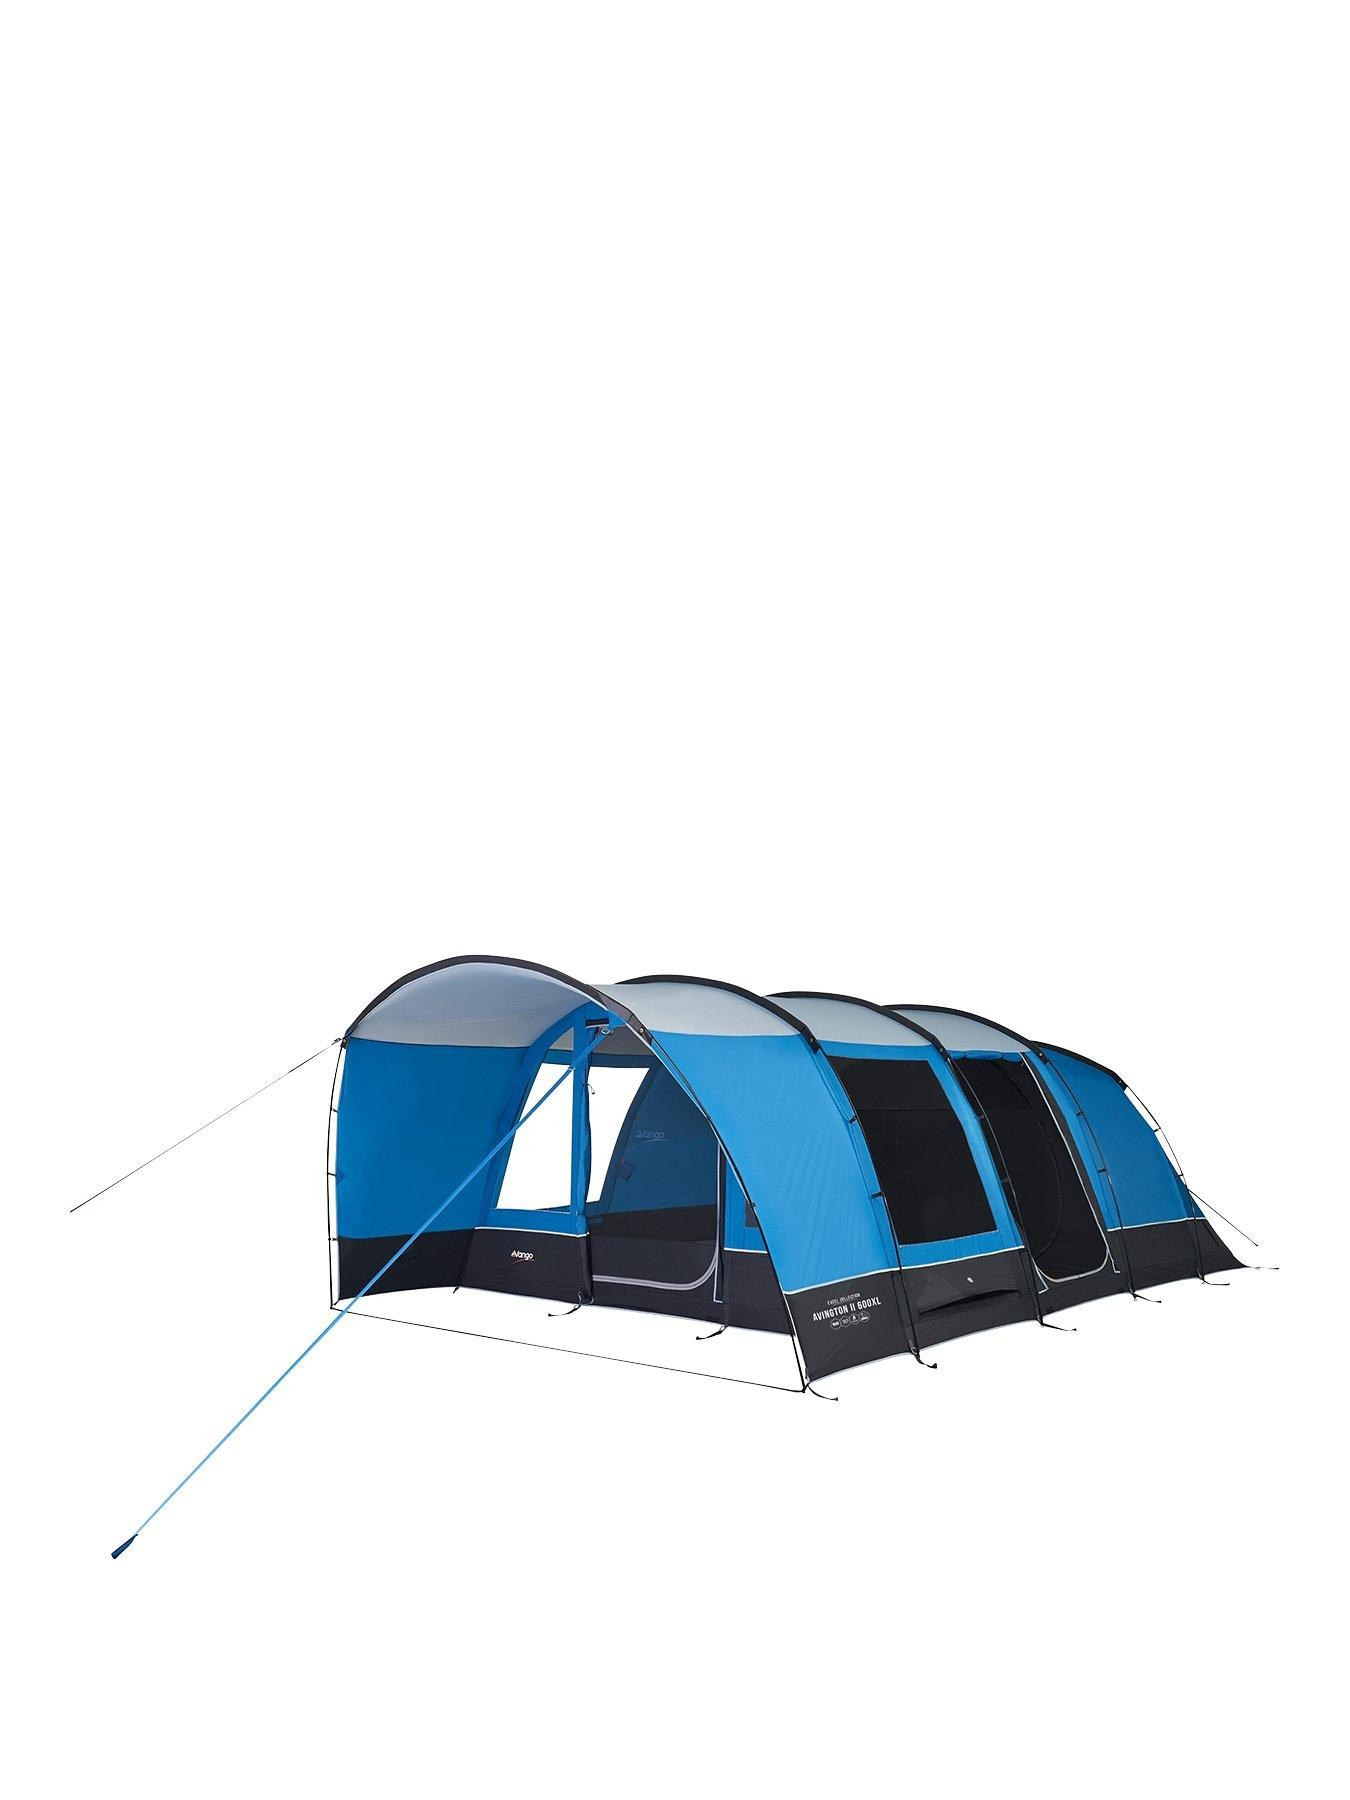 Outdoor Revolution Airedale 6S 6 Man Tent | Compare | Grazia